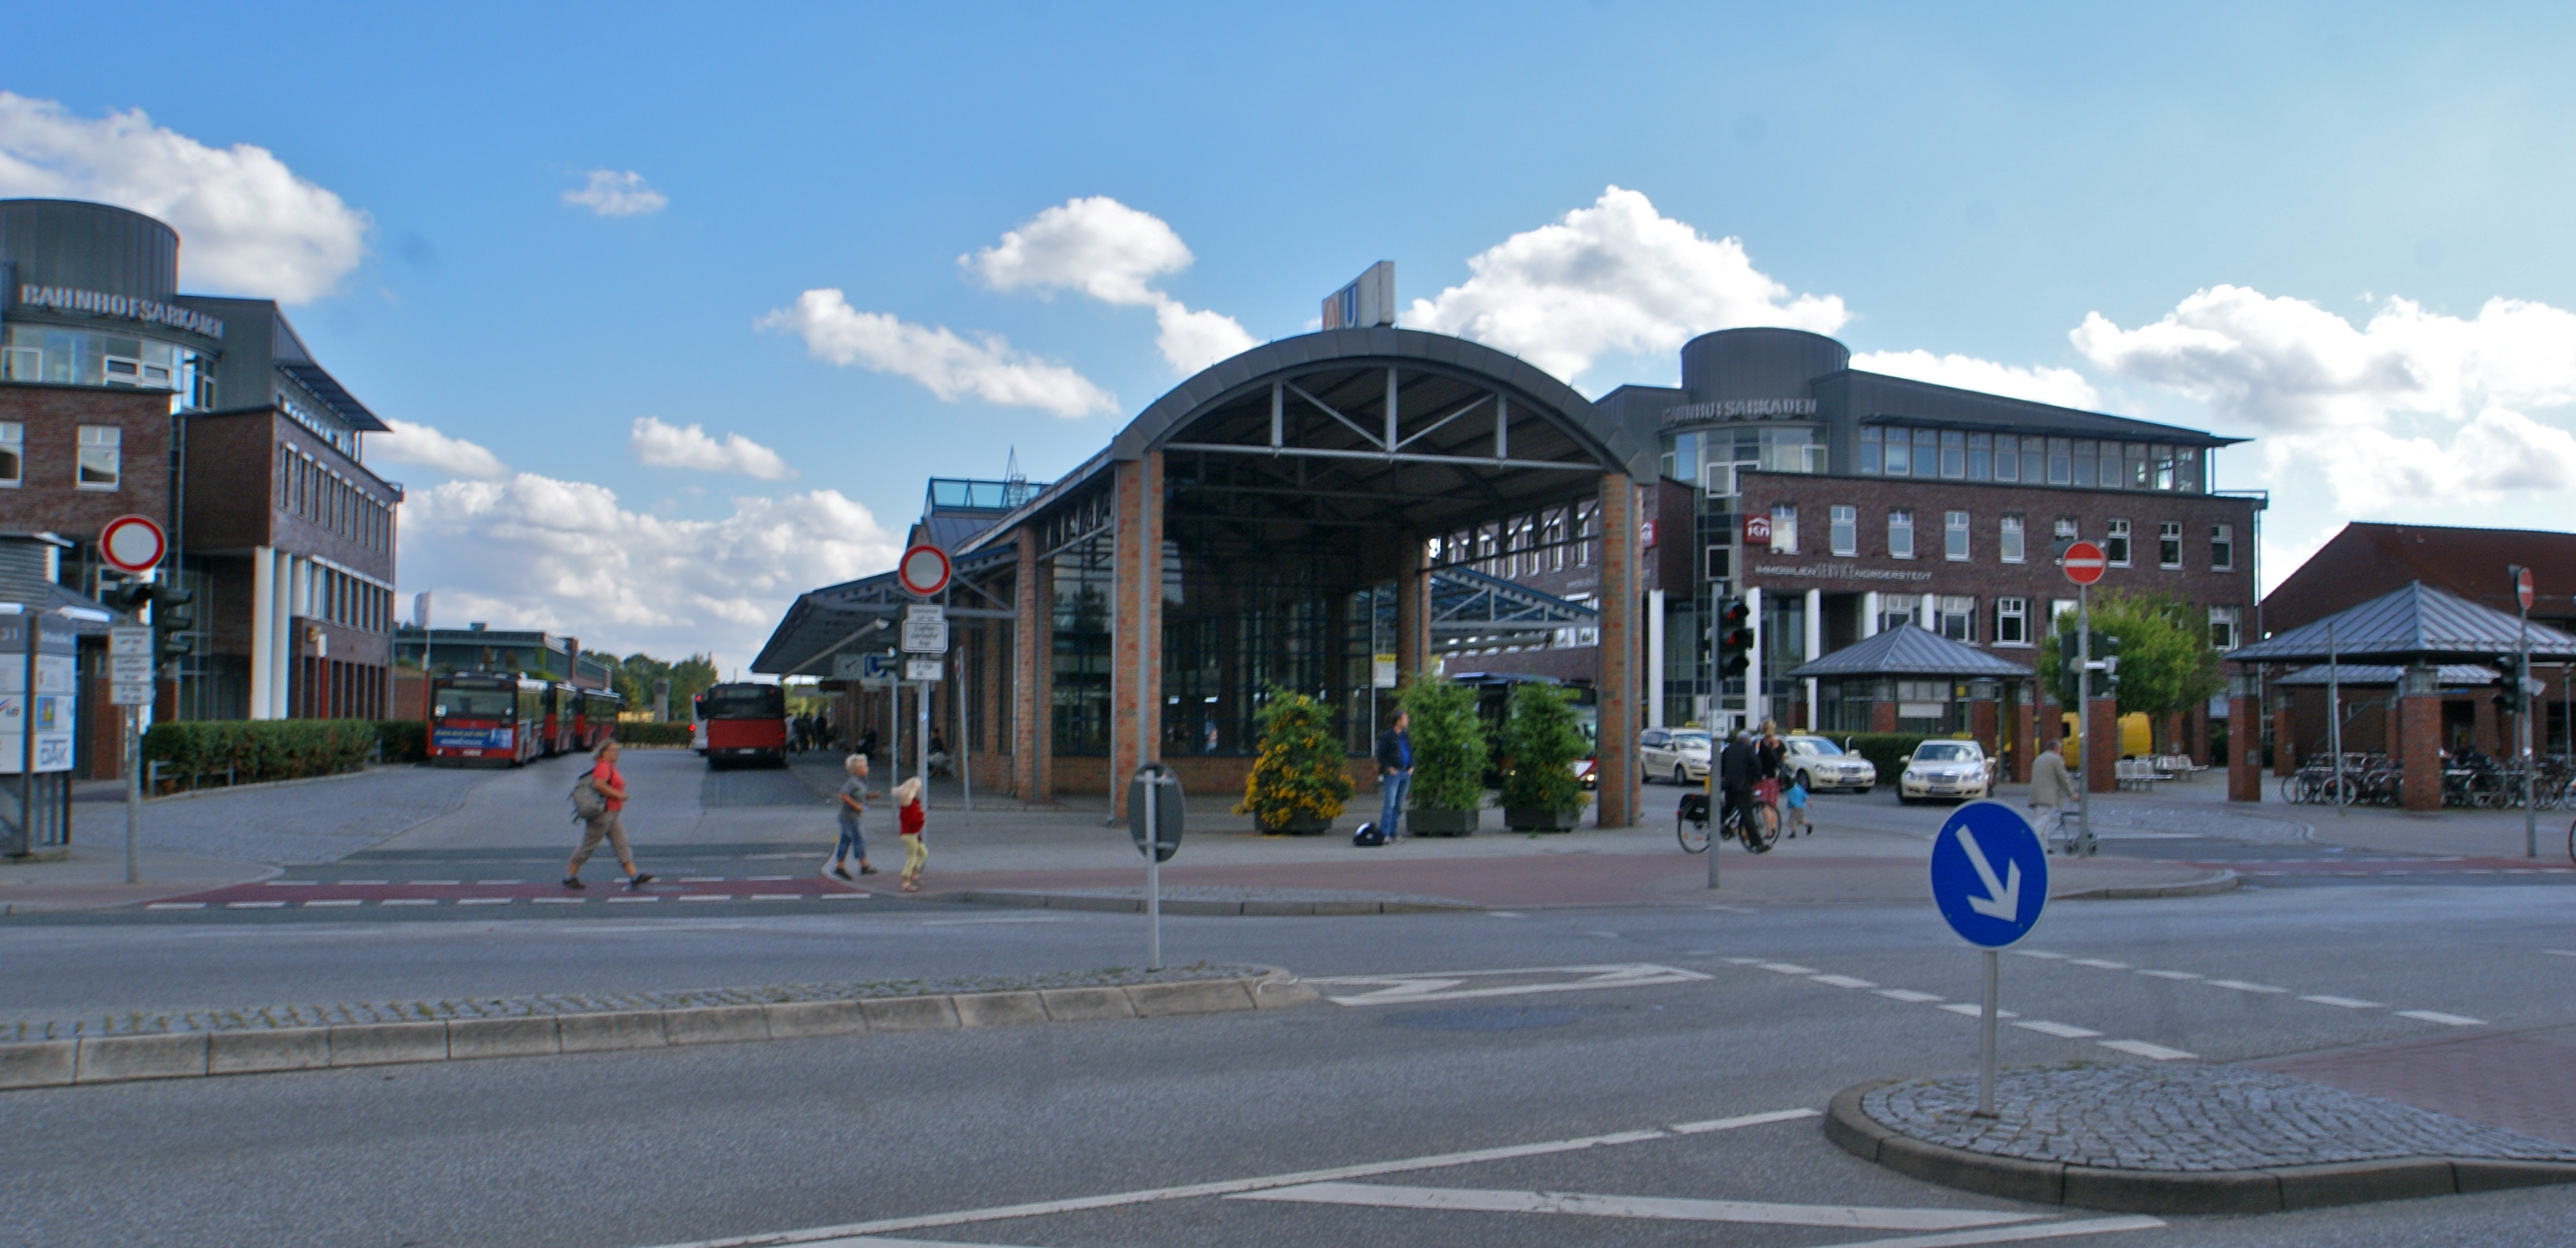 Norderstedt Germany  City pictures : Norderstedt Bahnhof Wikimedia Commons